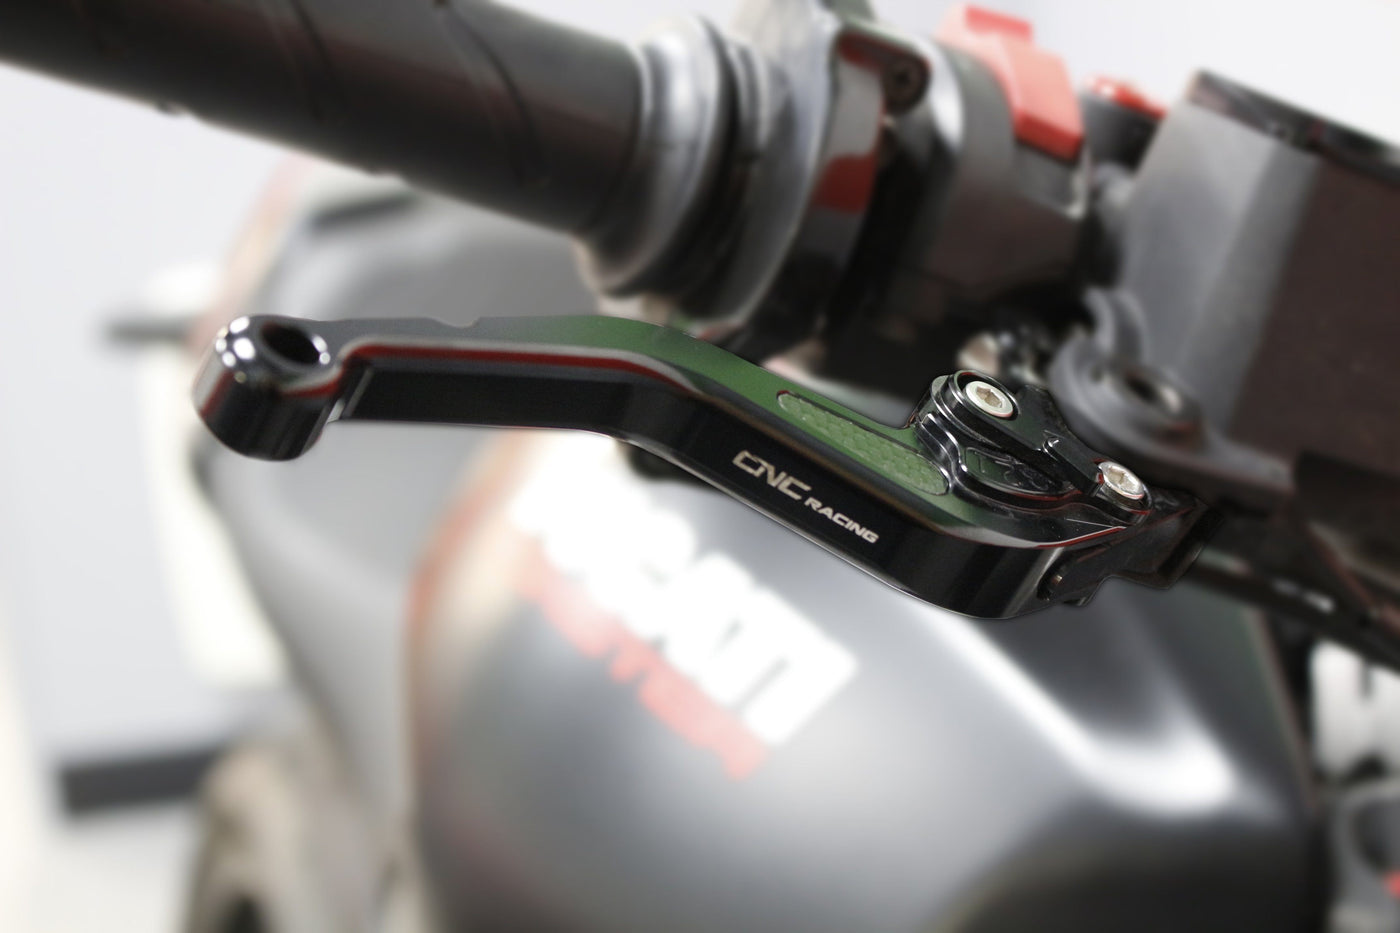 The Best Motorcycle Lever Upgrades | Aftermarket Clutch